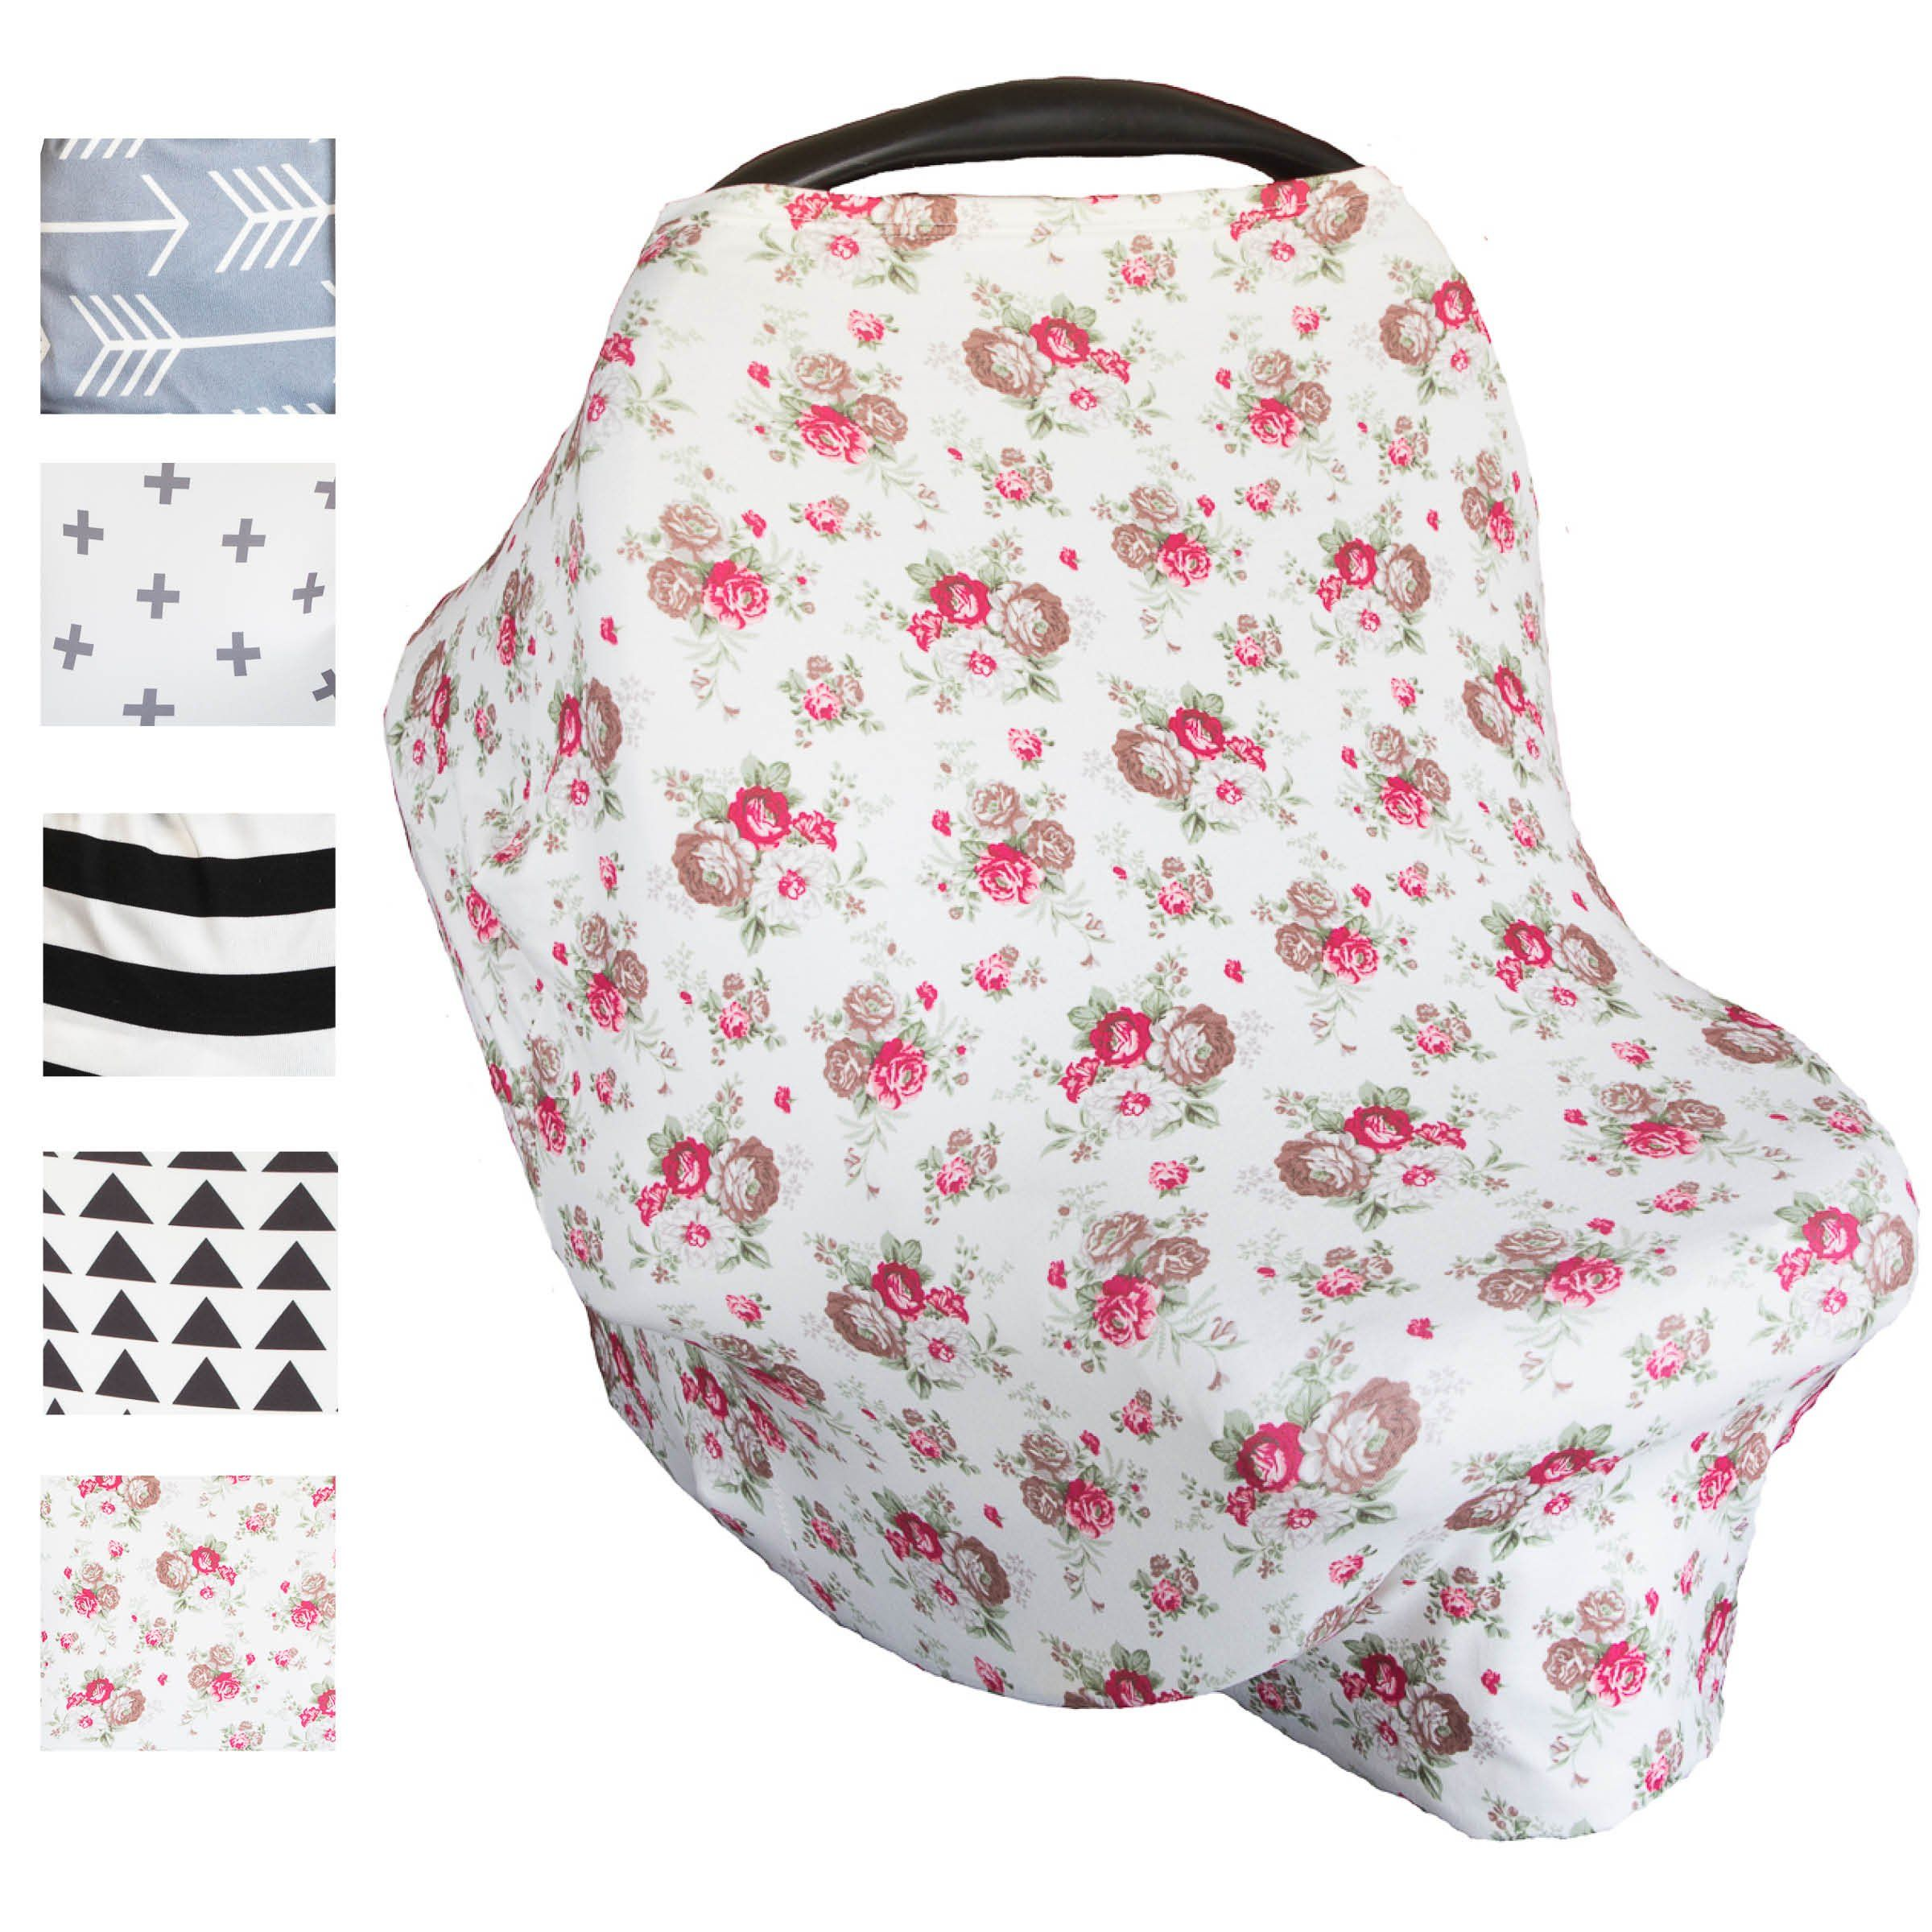 Stretchy Nursing Cover – Multi Use Baby Car Seat Canopy